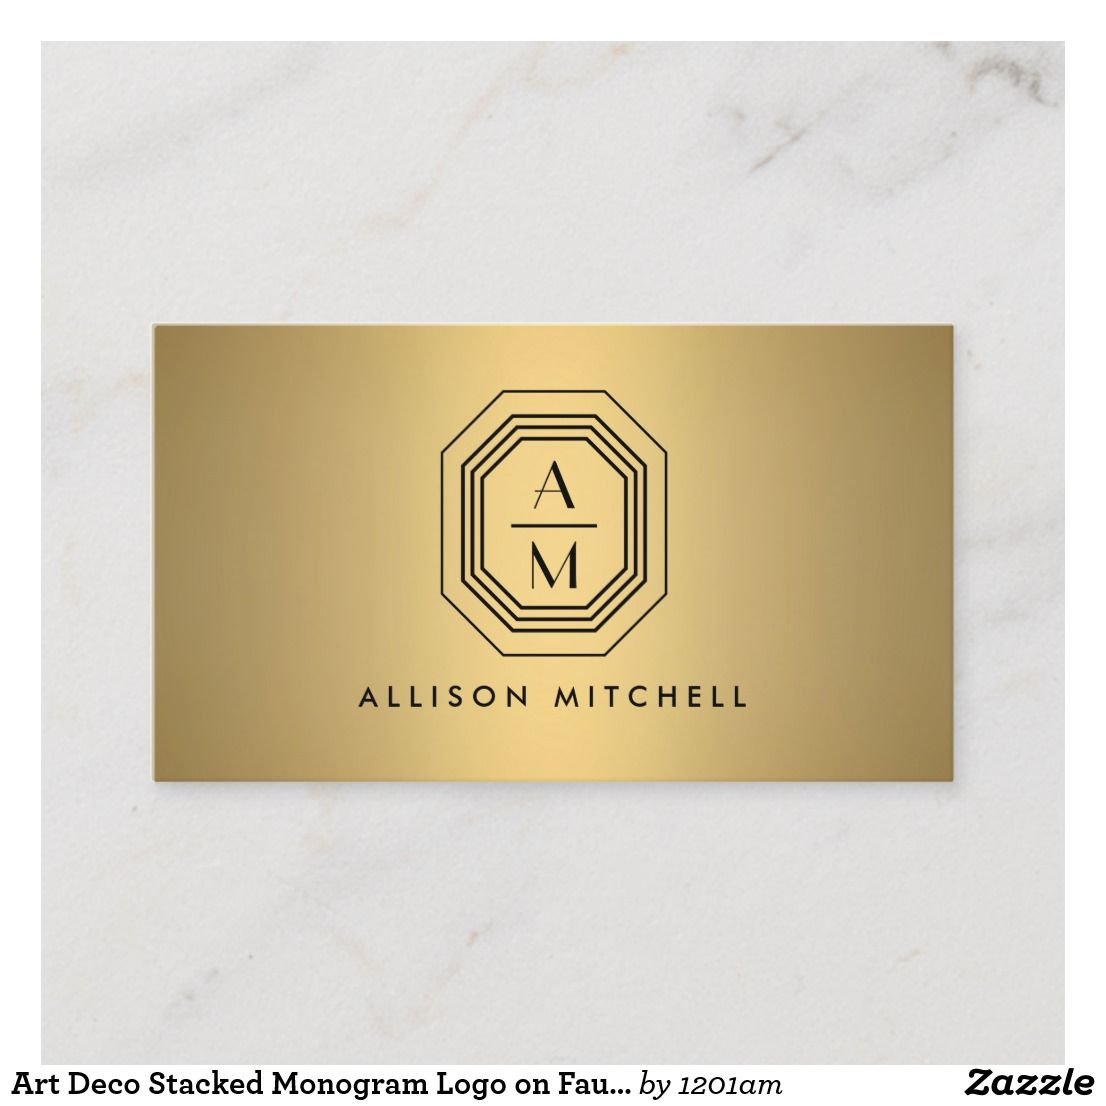 Art Deco Stacked Monogram Logo on Faux Gold Business Card